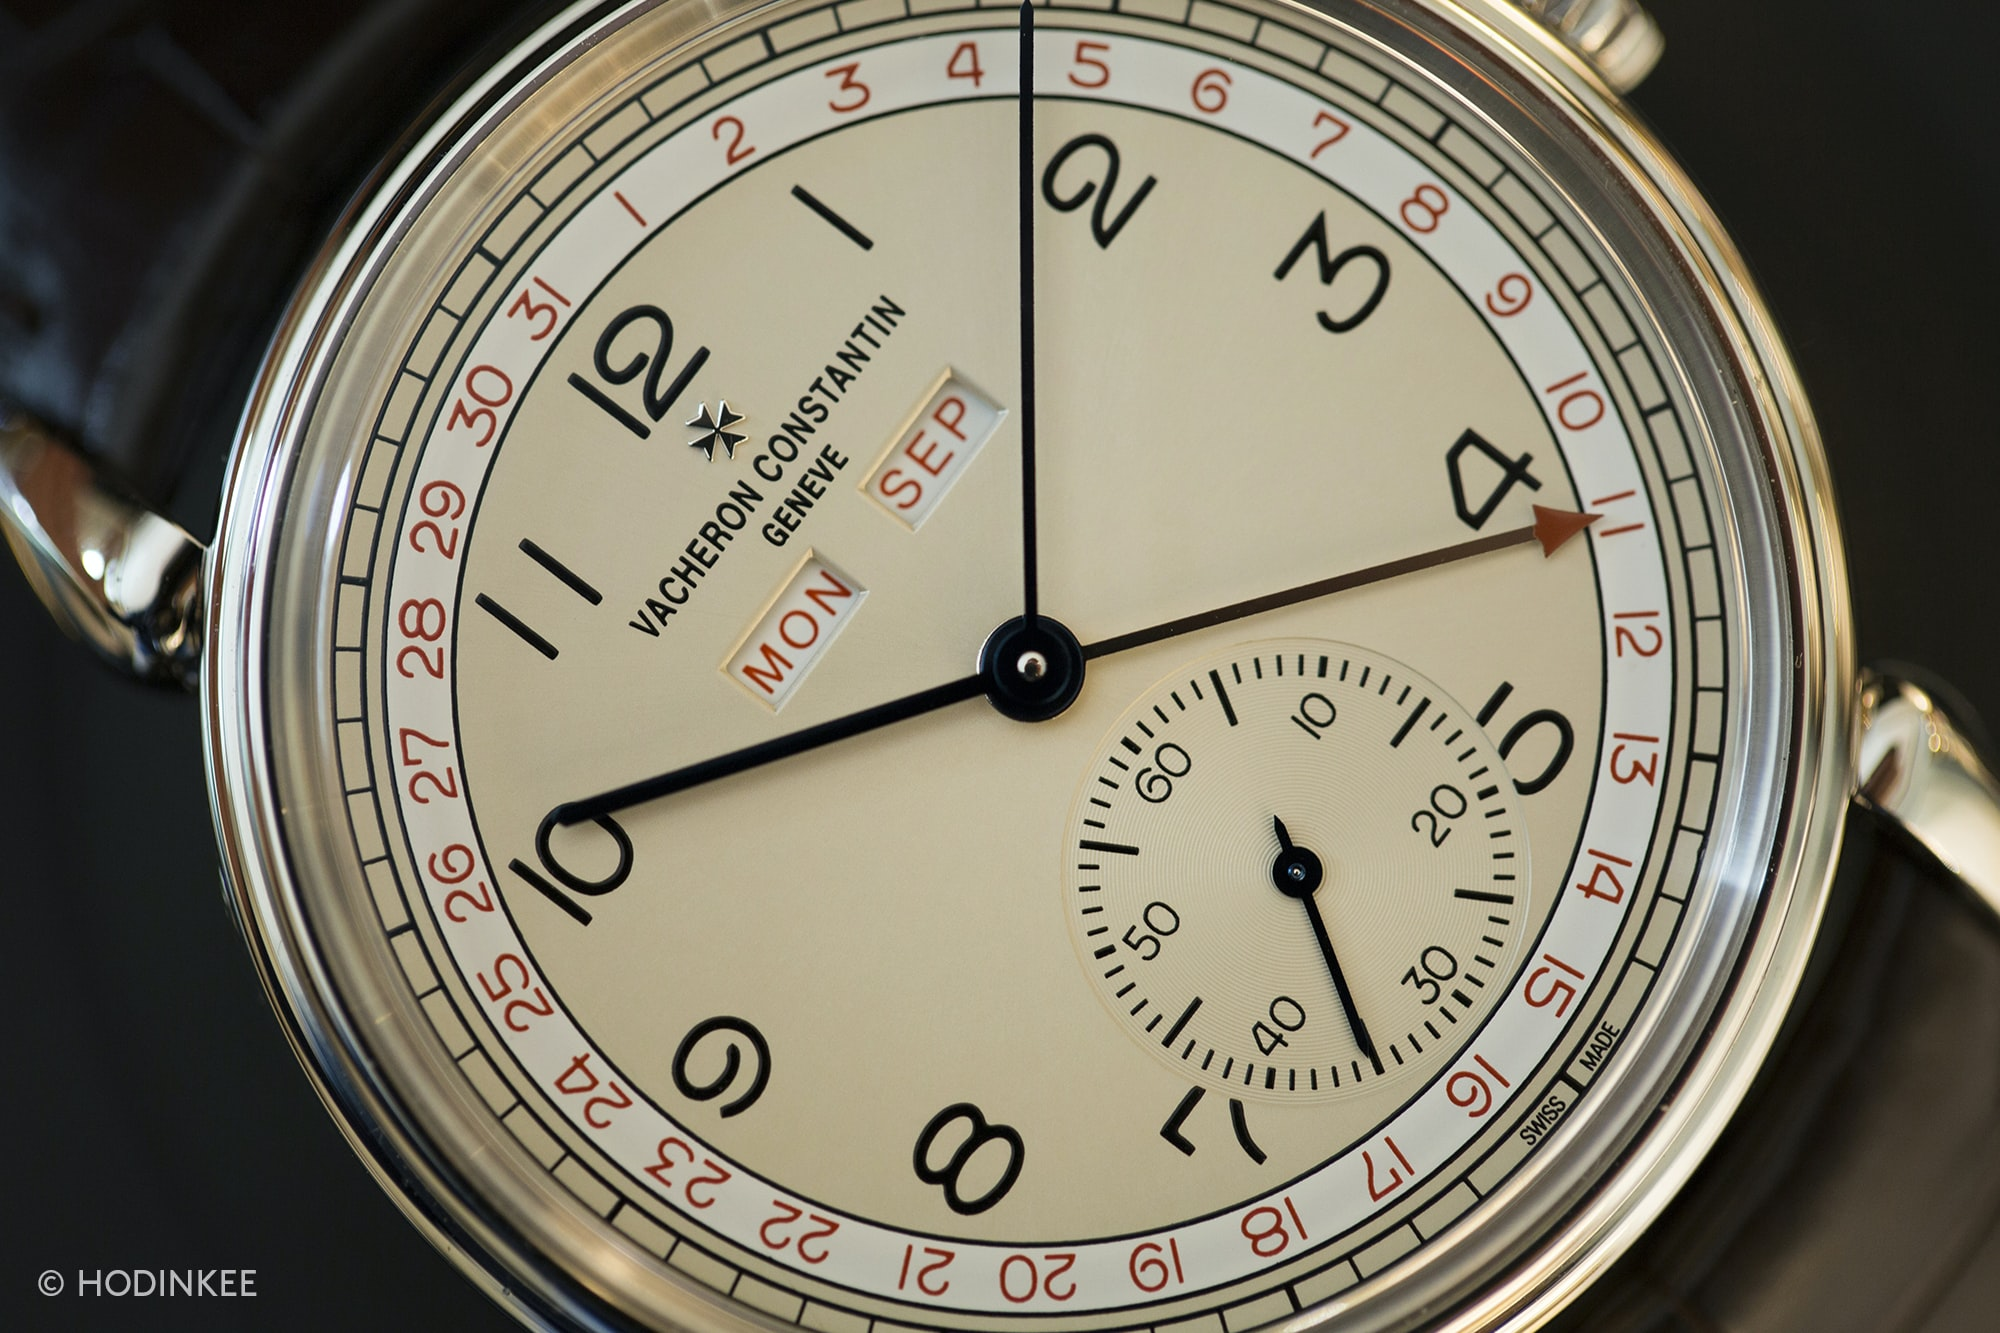 Introducing: The New Vacheron Constantin Historiques: Triple Calendrier 1942 And 1948, And American 1921 Small (Exclusive Live Pics) Introducing: The New Vacheron Constantin Historiques: Triple Calendrier 1942 And 1948, And American 1921 Small (Exclusive Live Pics) 3H0A2915 copy